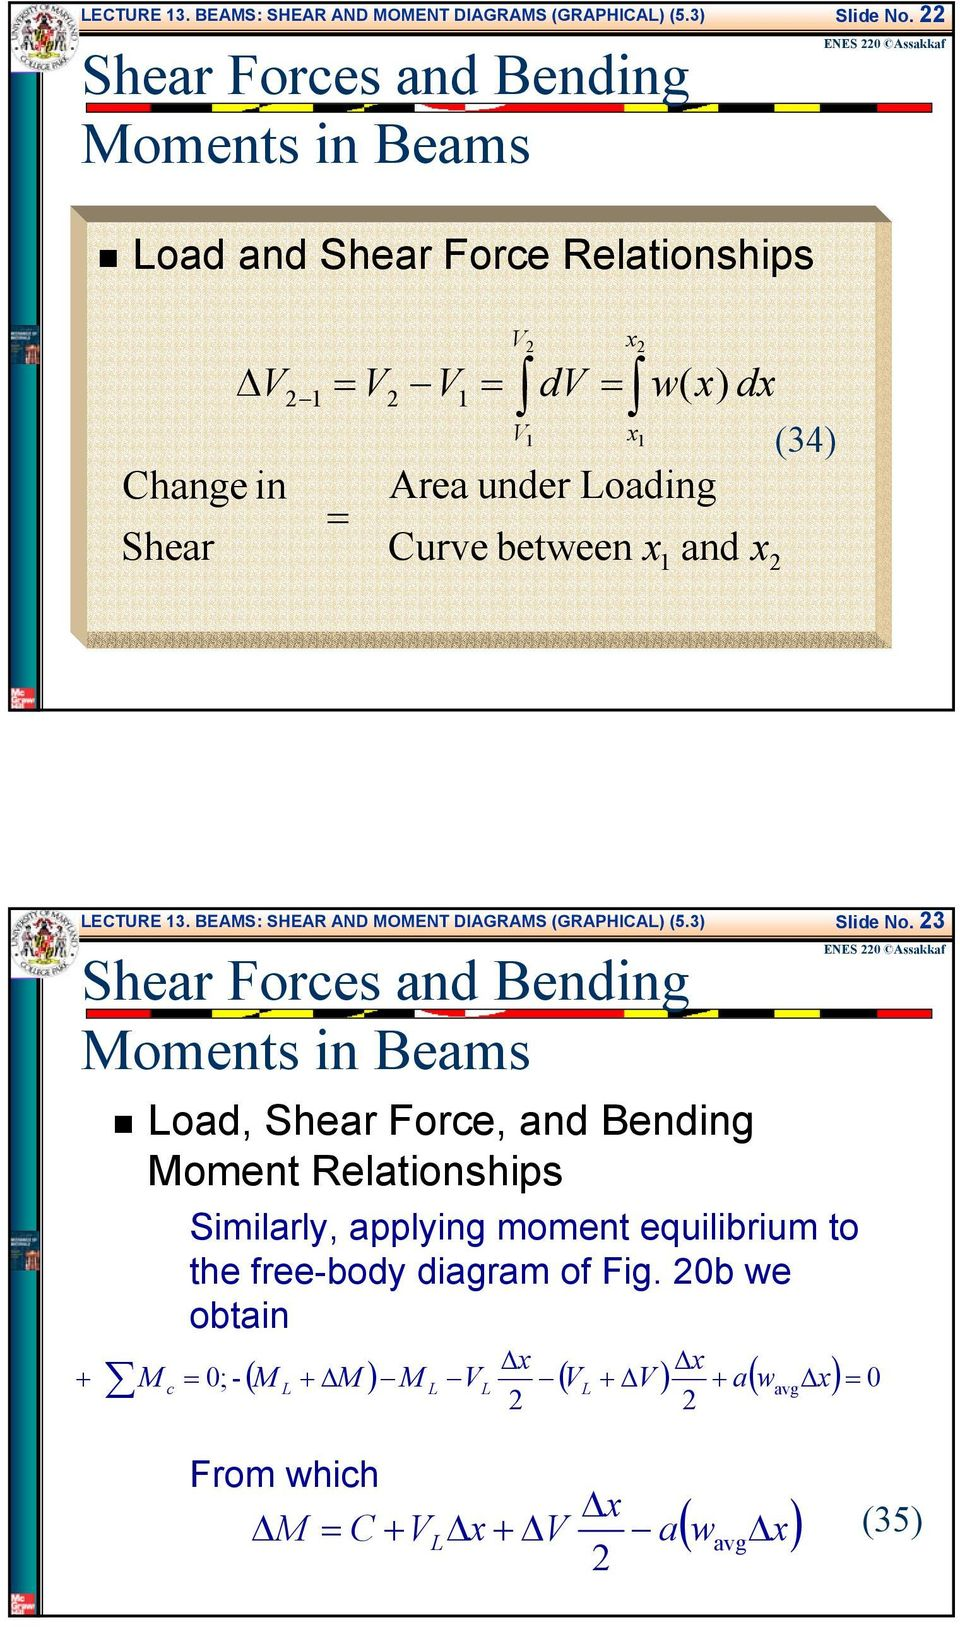 Beams Shear And Moment Diagrams Graphical Pdf Force 34 3 Similarly Applying Equilibrium To The Free Body Diagram Of